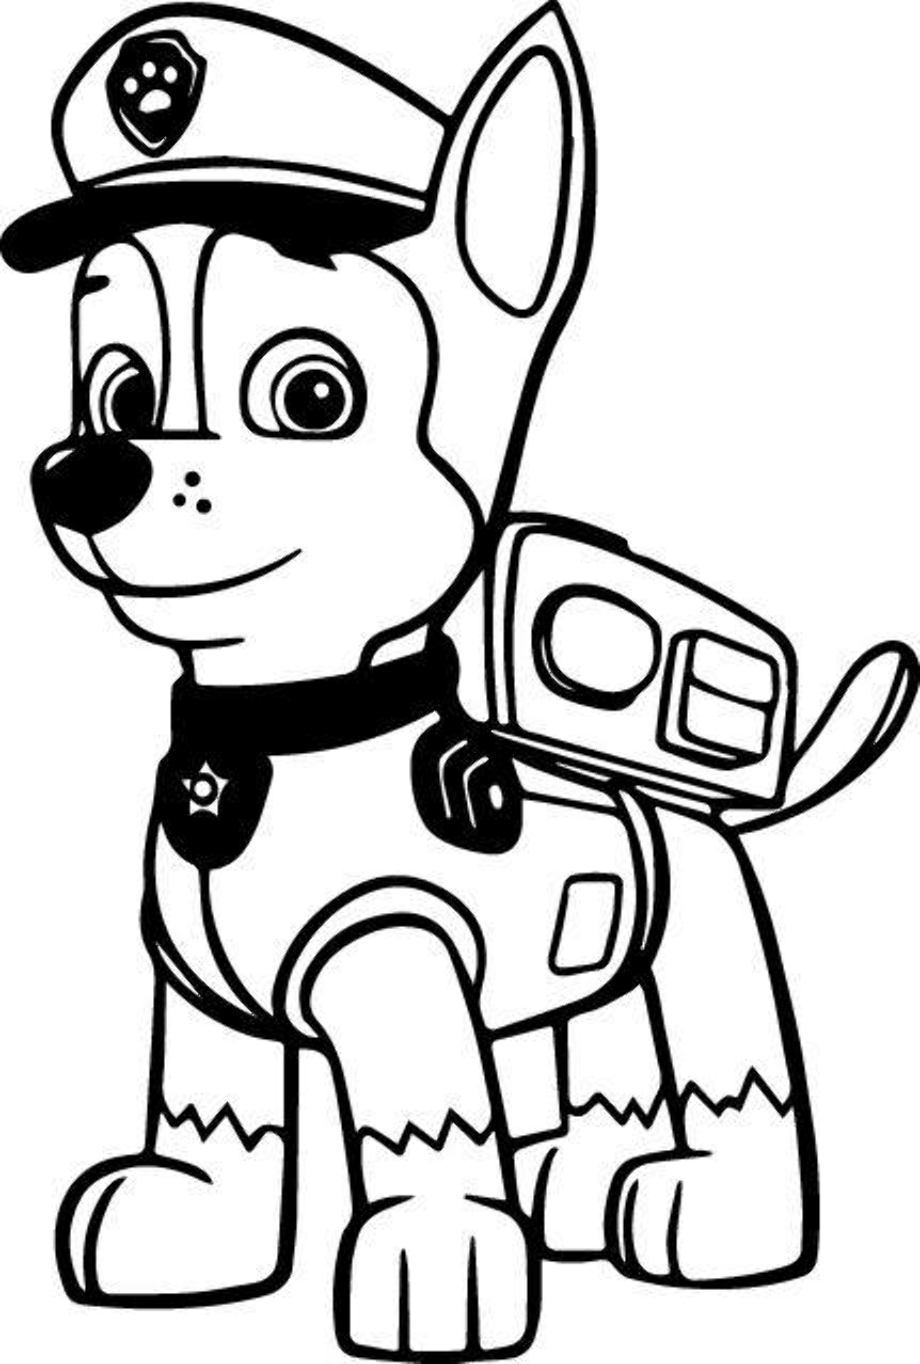 paw patrol coloring outline download high quality paw patrol clipart outline coloring outline patrol paw